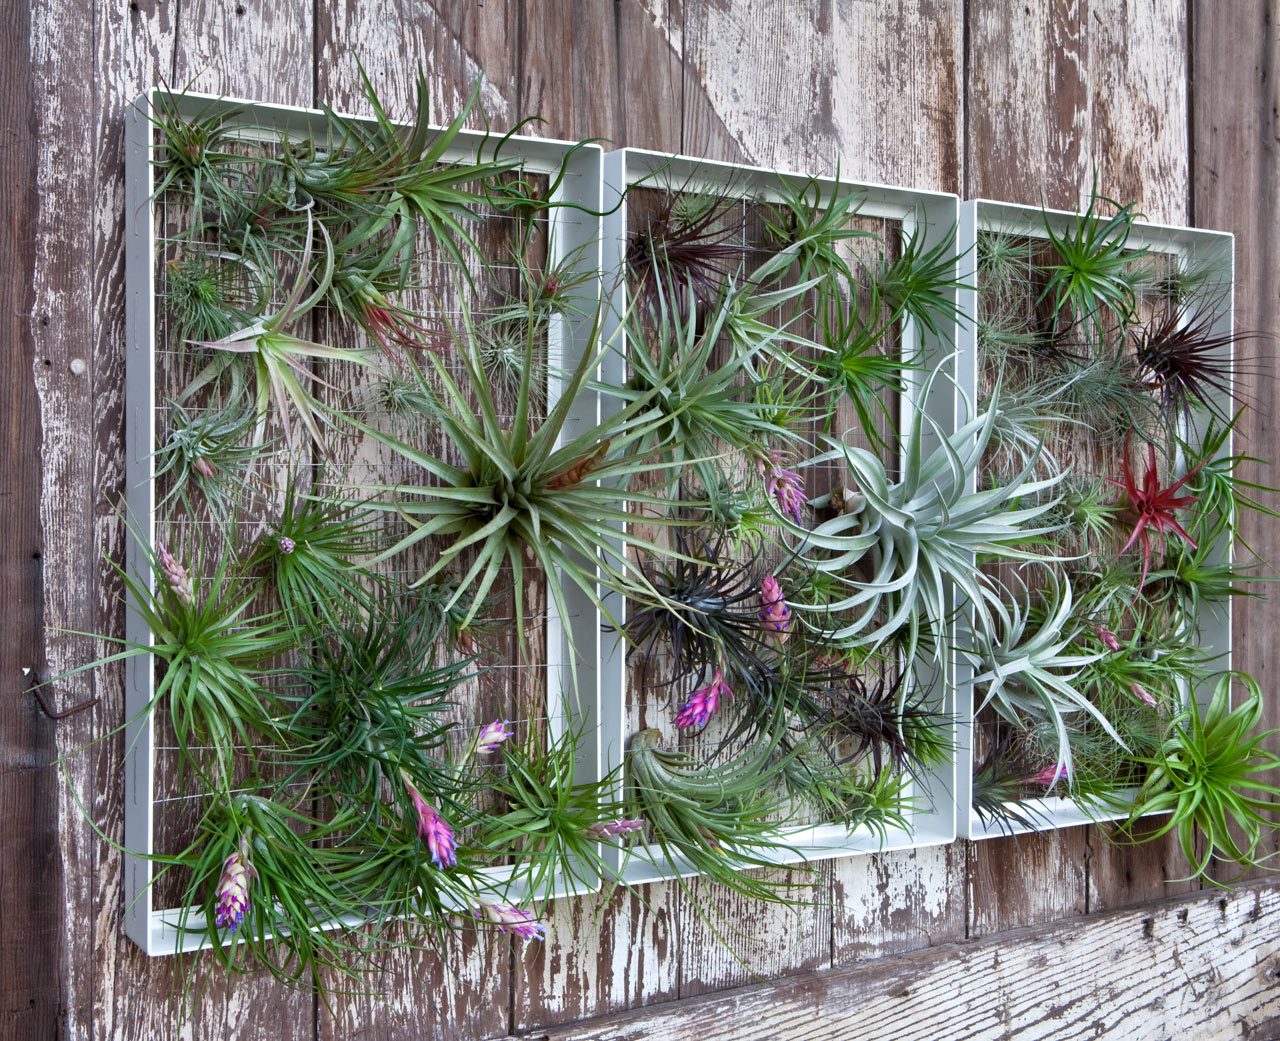 Living Wall Art Vertical Garden Frames by Airplantman ... : outdoor garden wall art - www.pureclipart.com